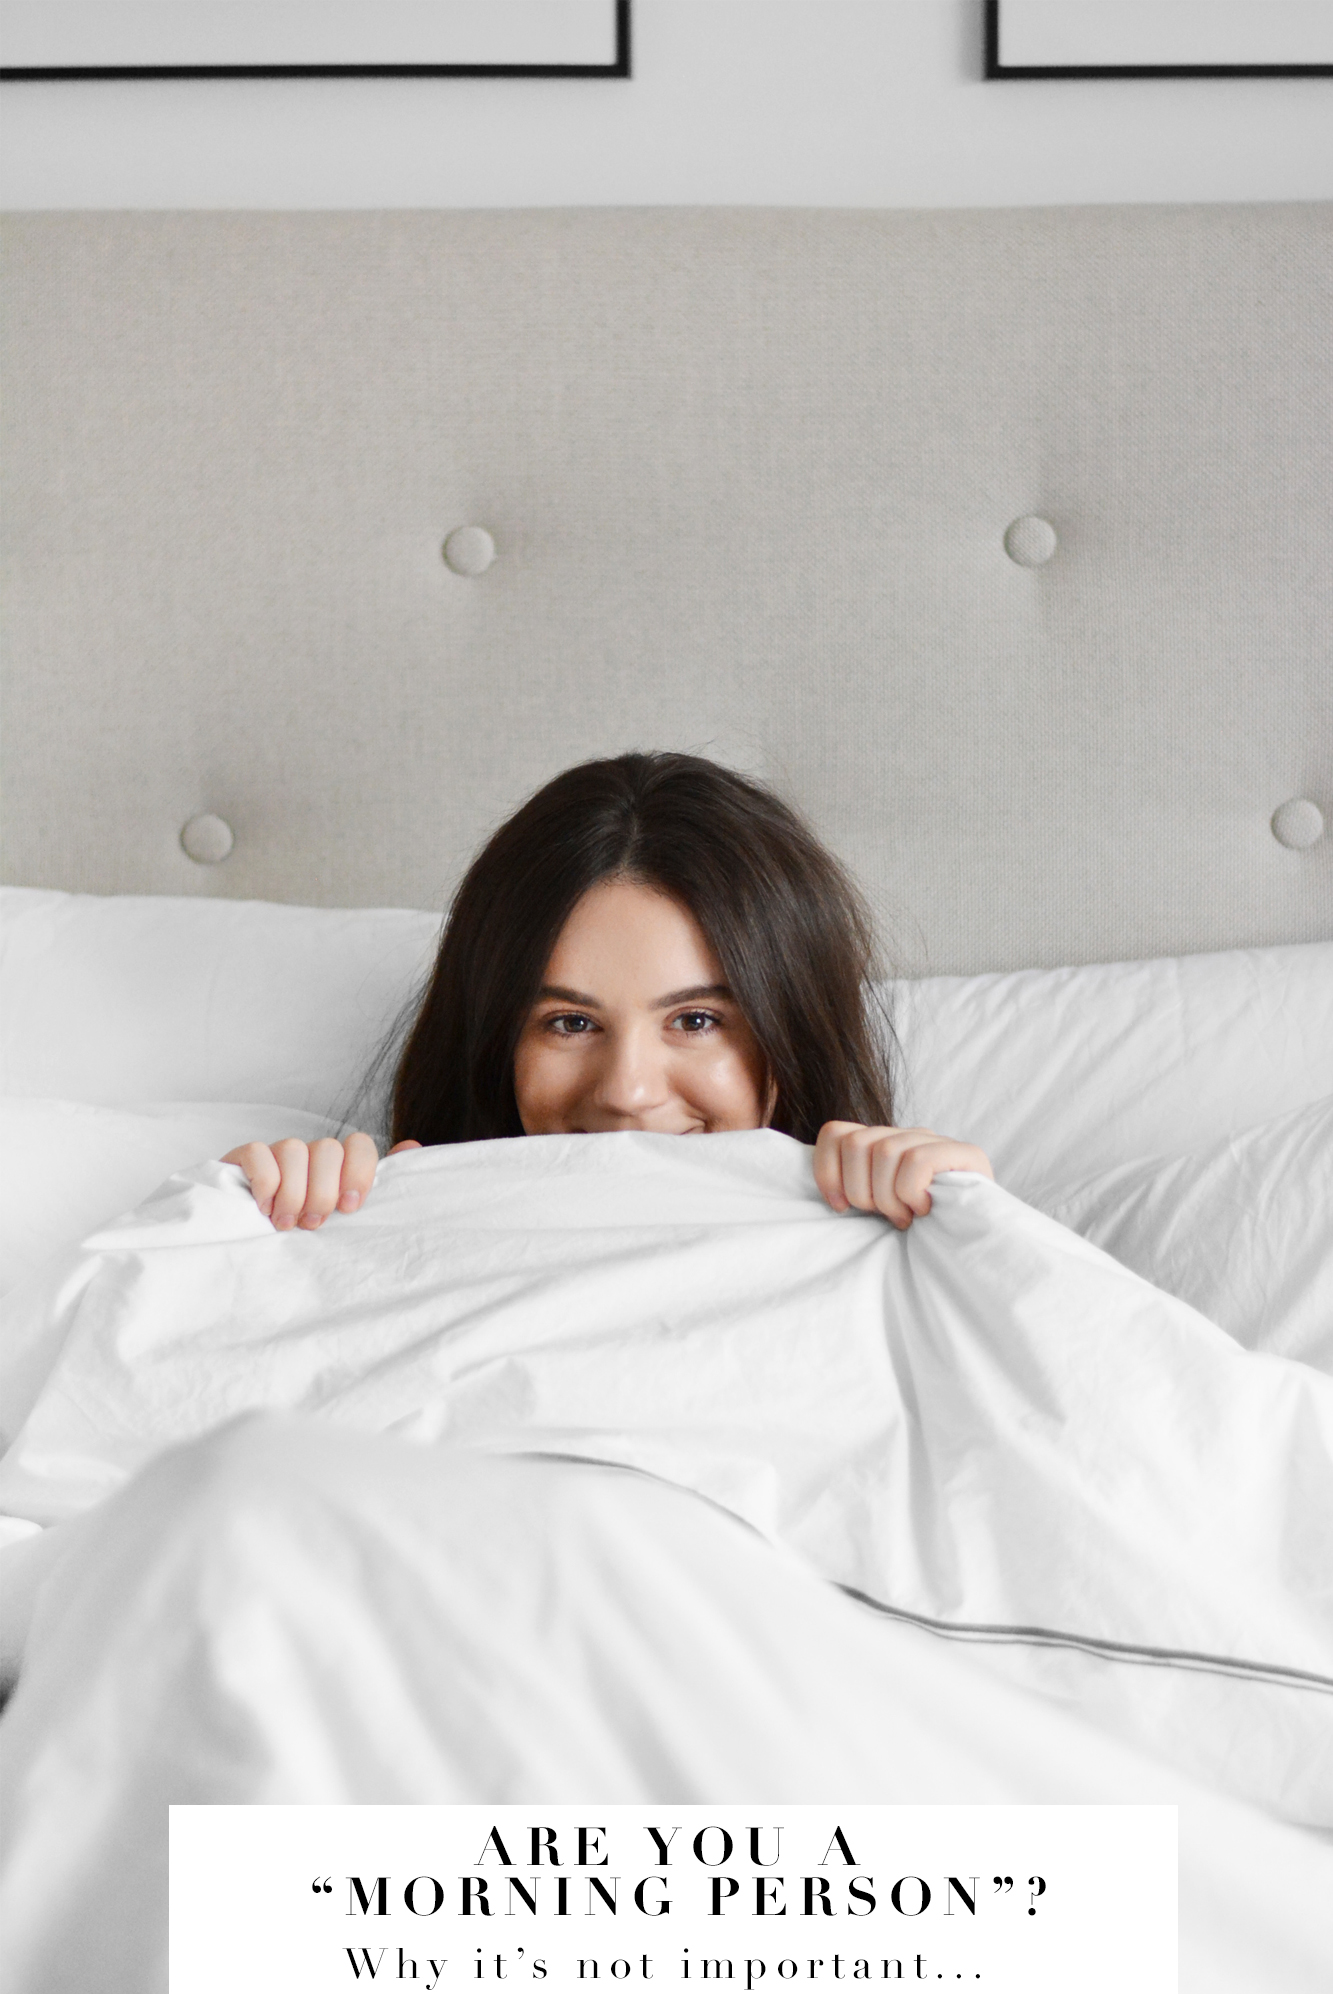 WHY IT'S NOT IMPORTANT TO BE A MORNING PERSON